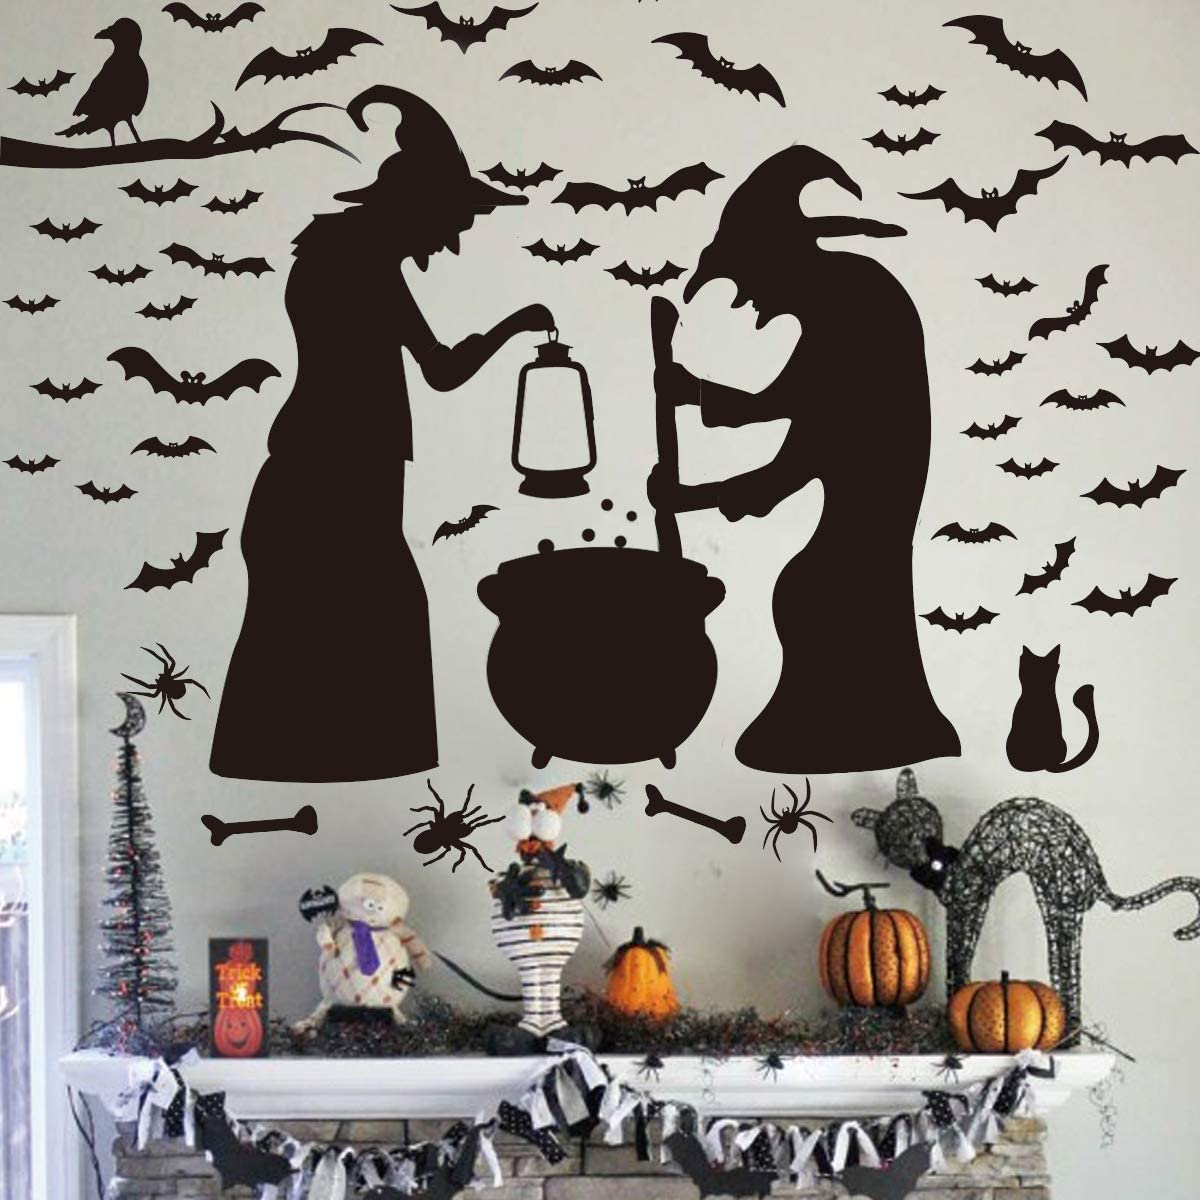 Ivenf Halloween Decorations Wall Decal Window Decor Party Supplies 2 Witches with Bats Spider Cat and Crow